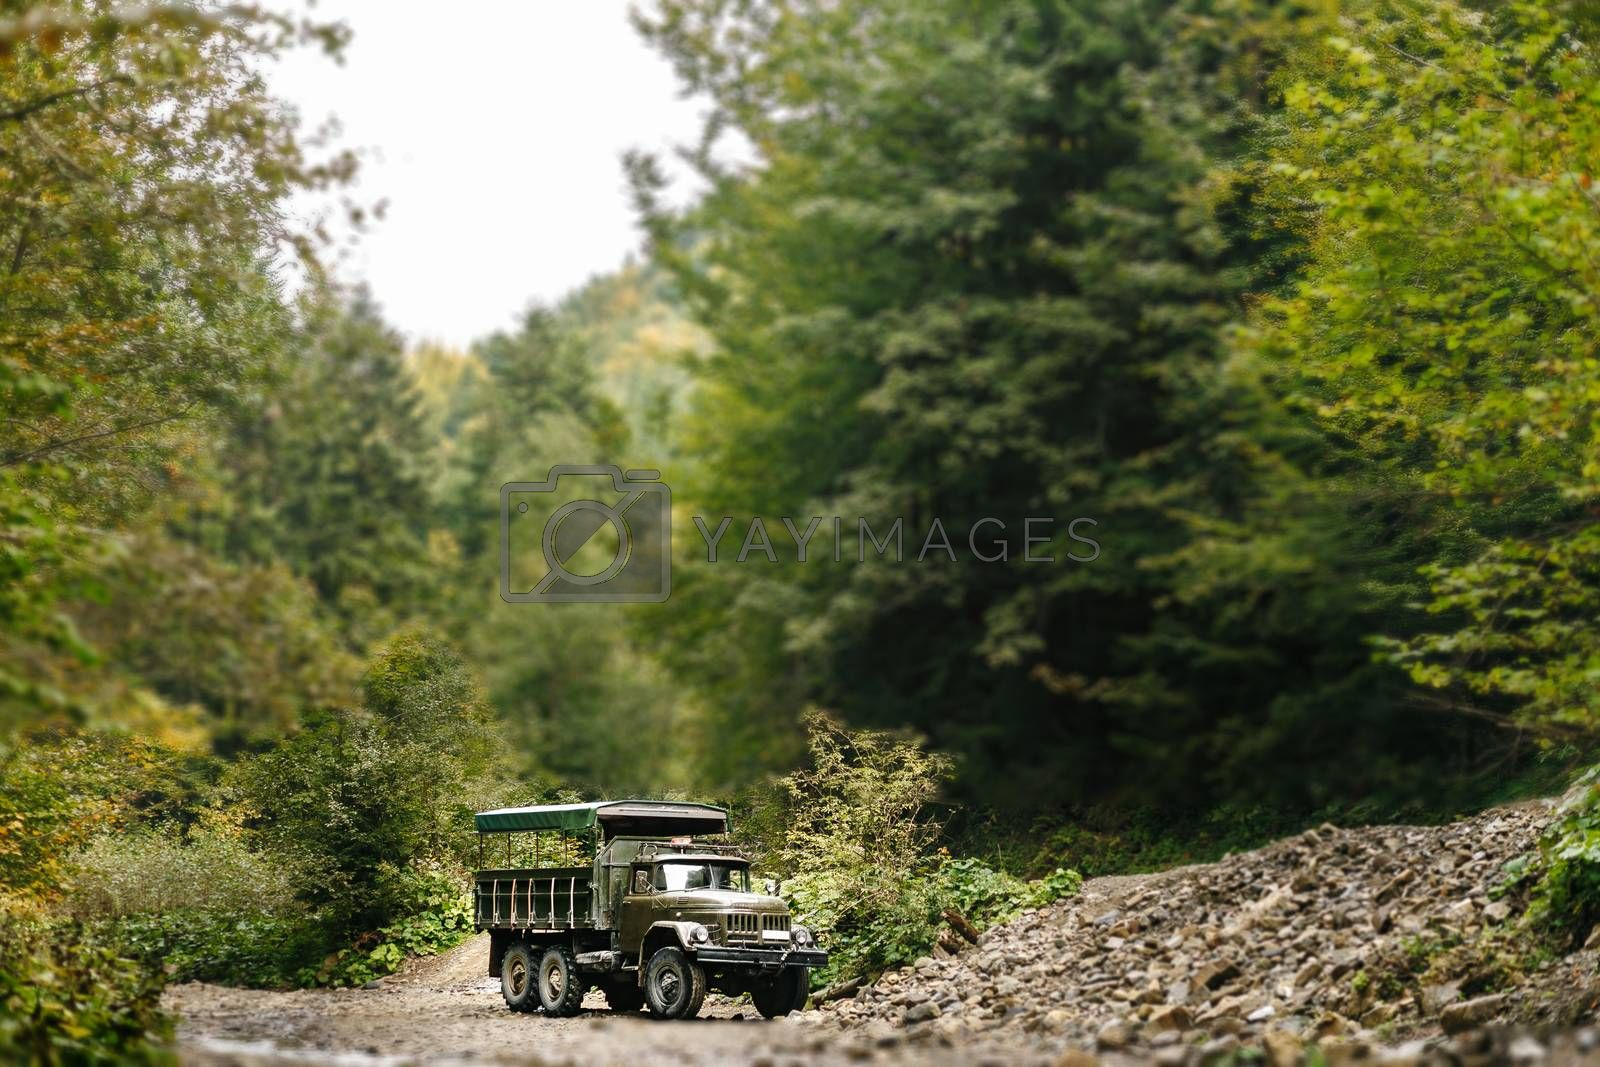 Soviet truck in the Carpathian Mountains carries people on excursions.